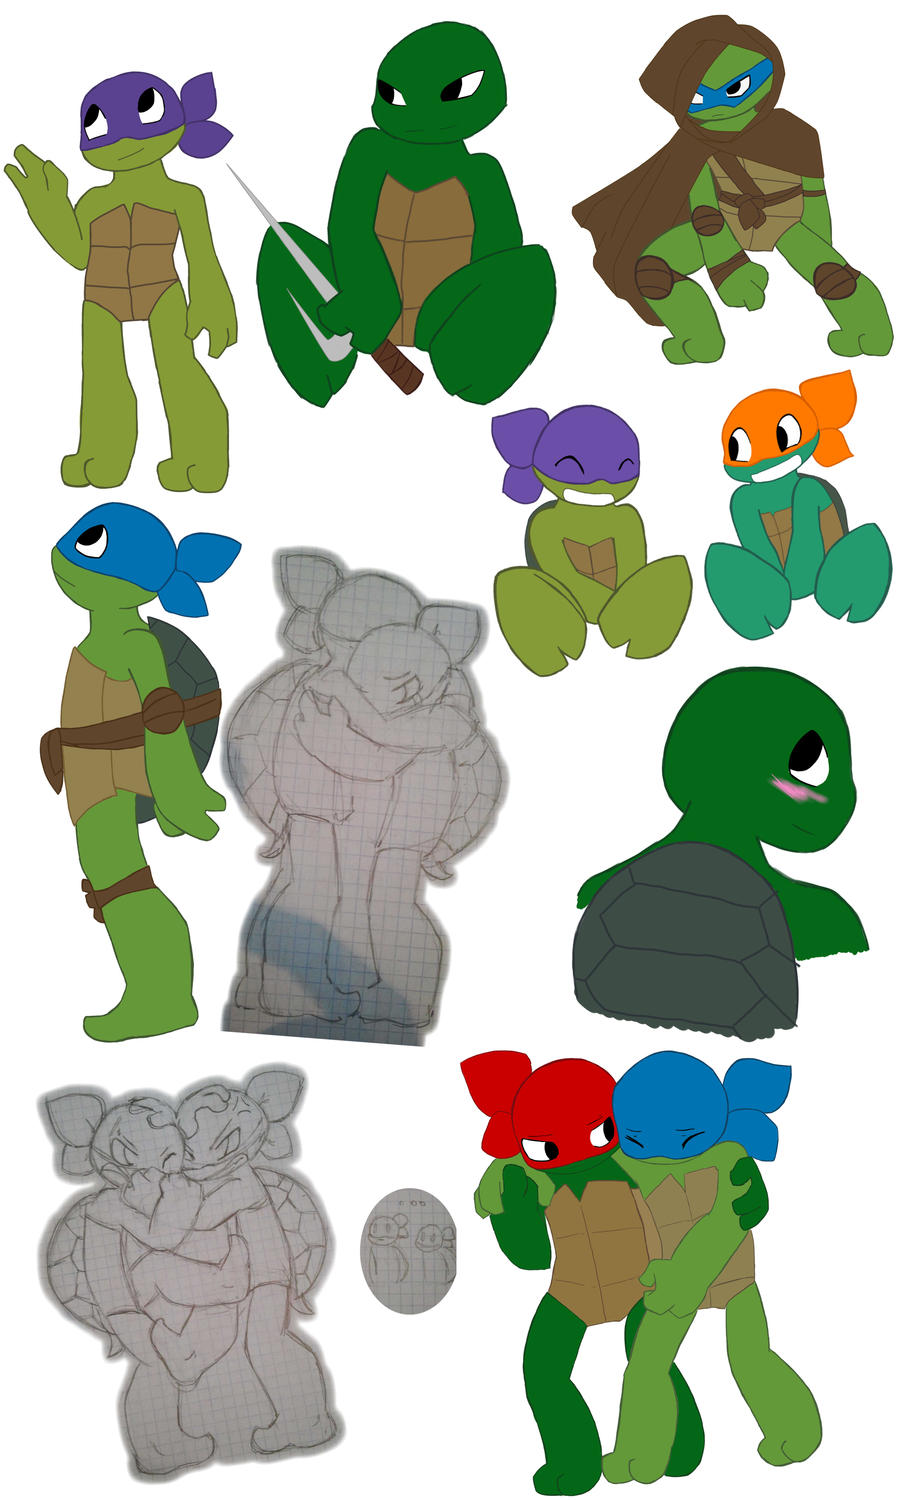 Turtles tots sketch by LittleChaCha